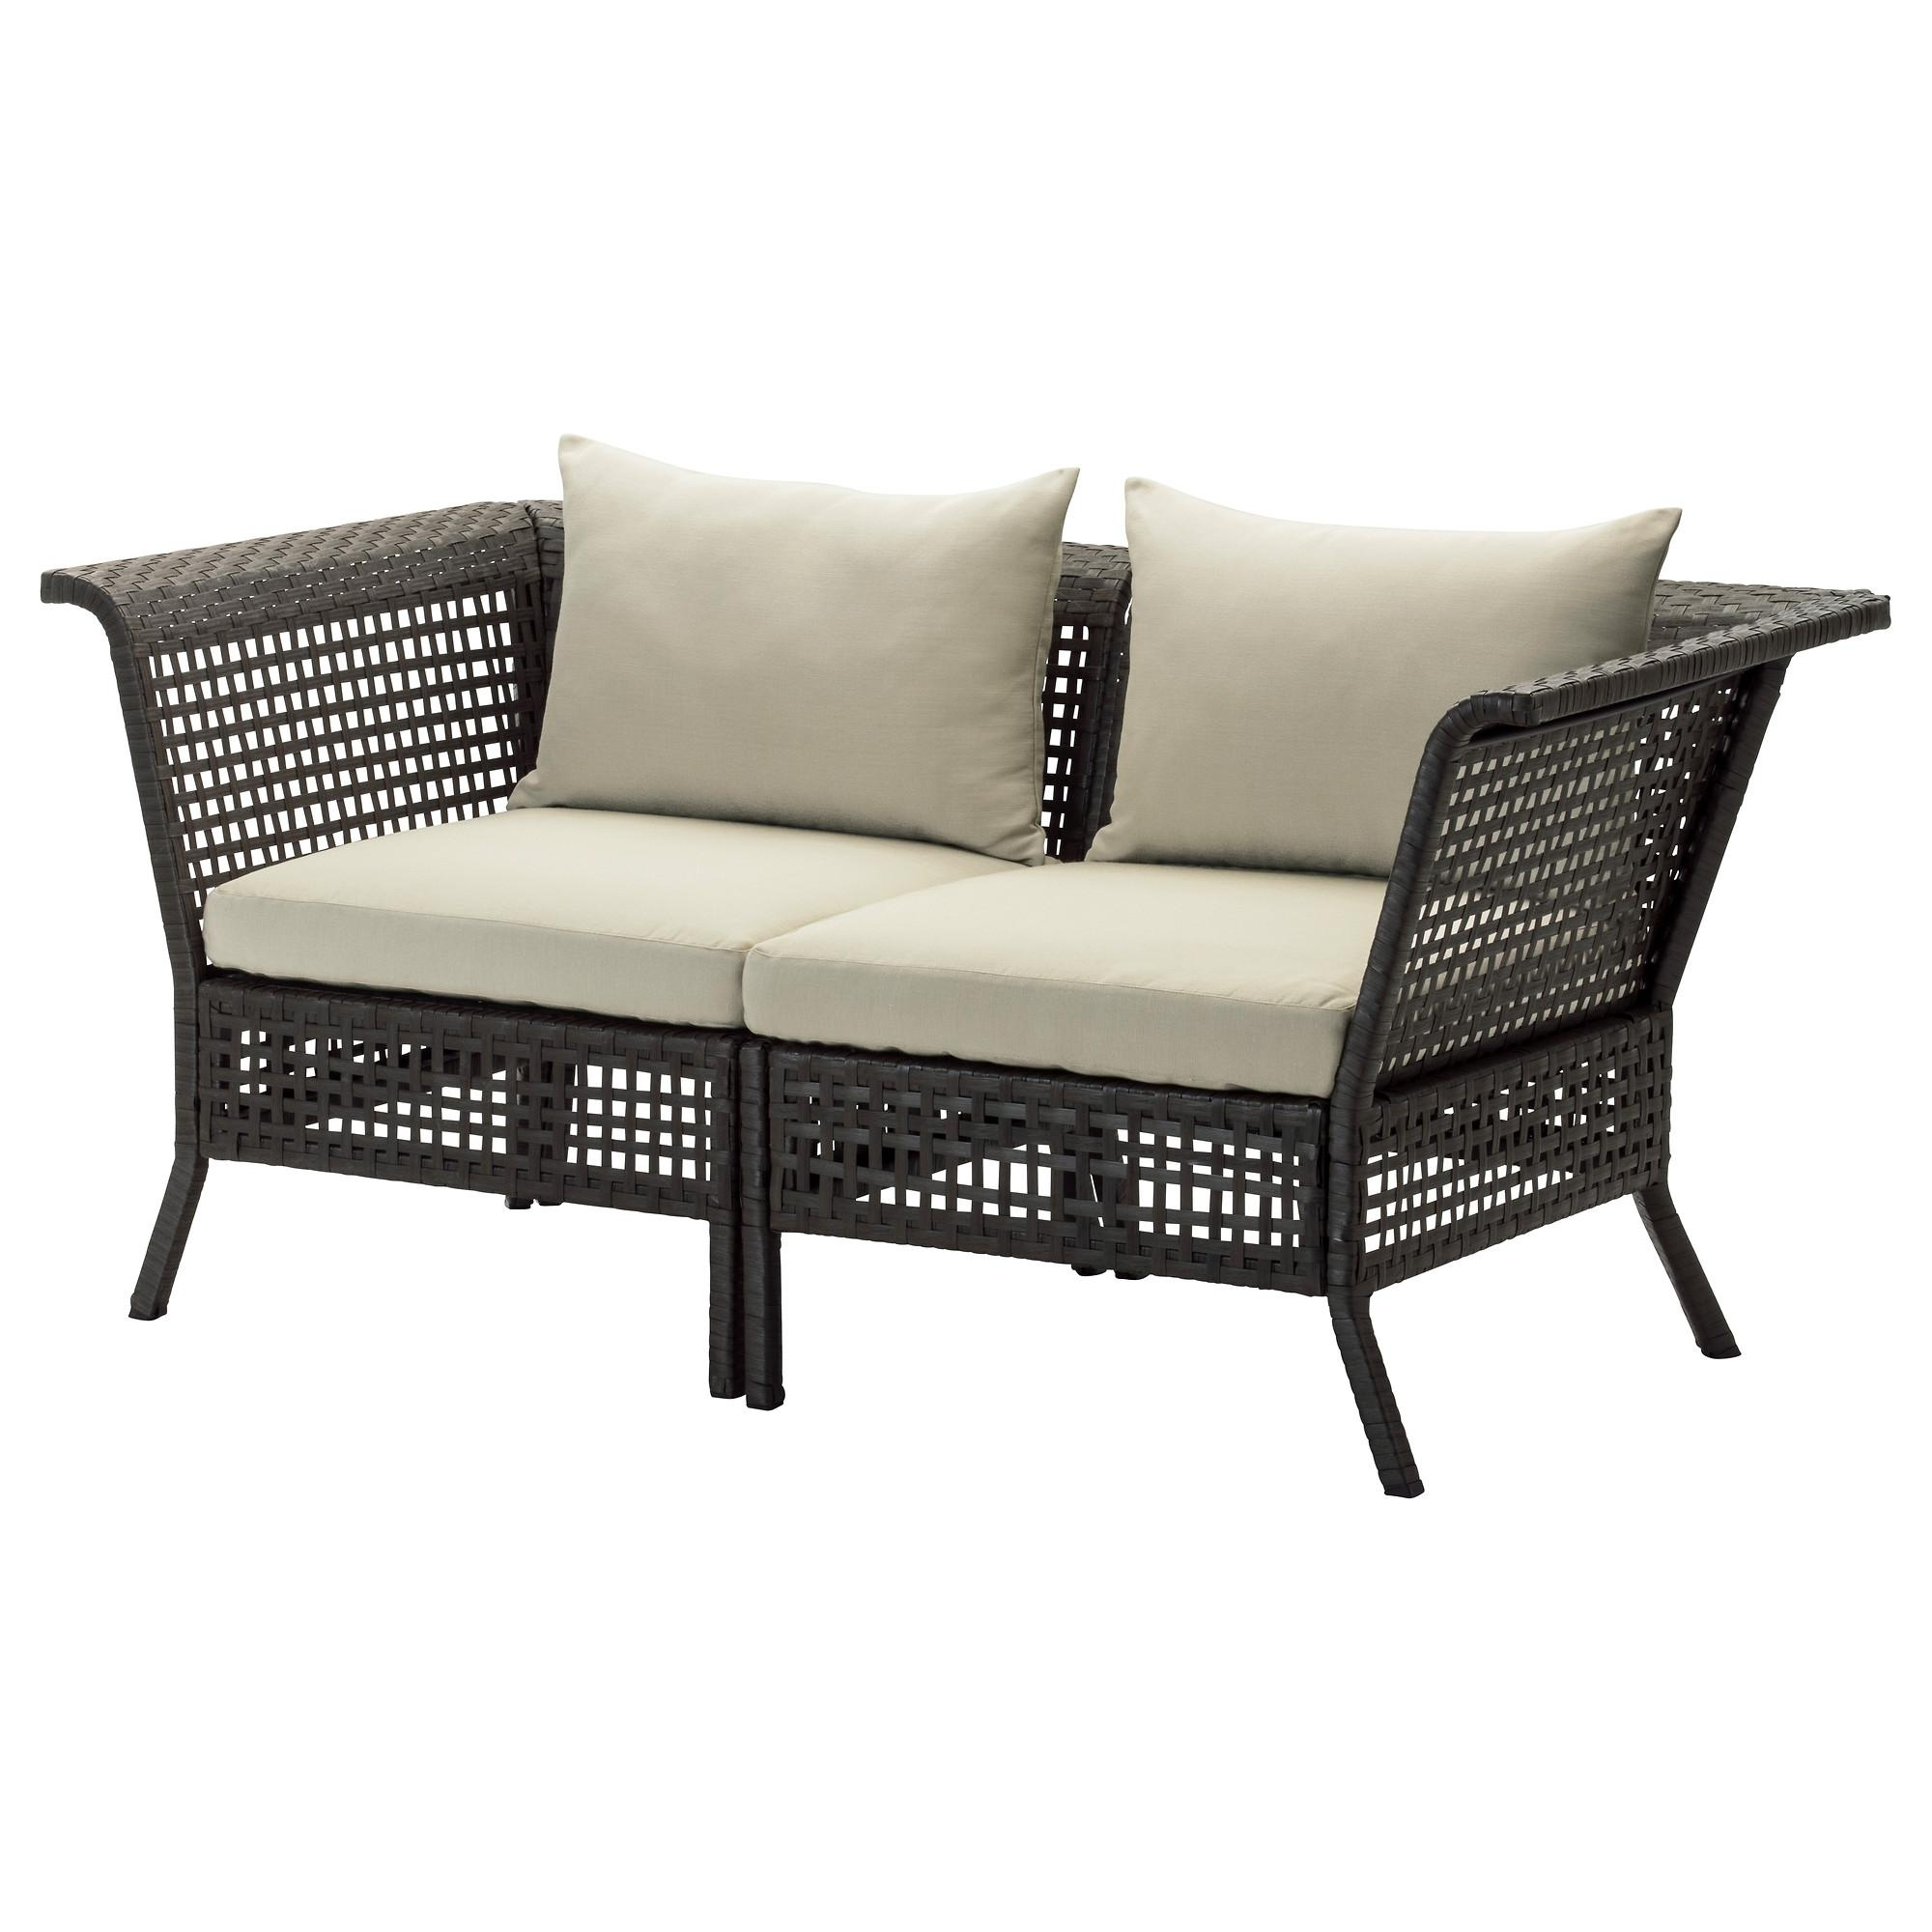 Conservatory Furniture & Garden Sofa Sets | Ikea Within Sofa Chairs Ikea (Image 4 of 20)